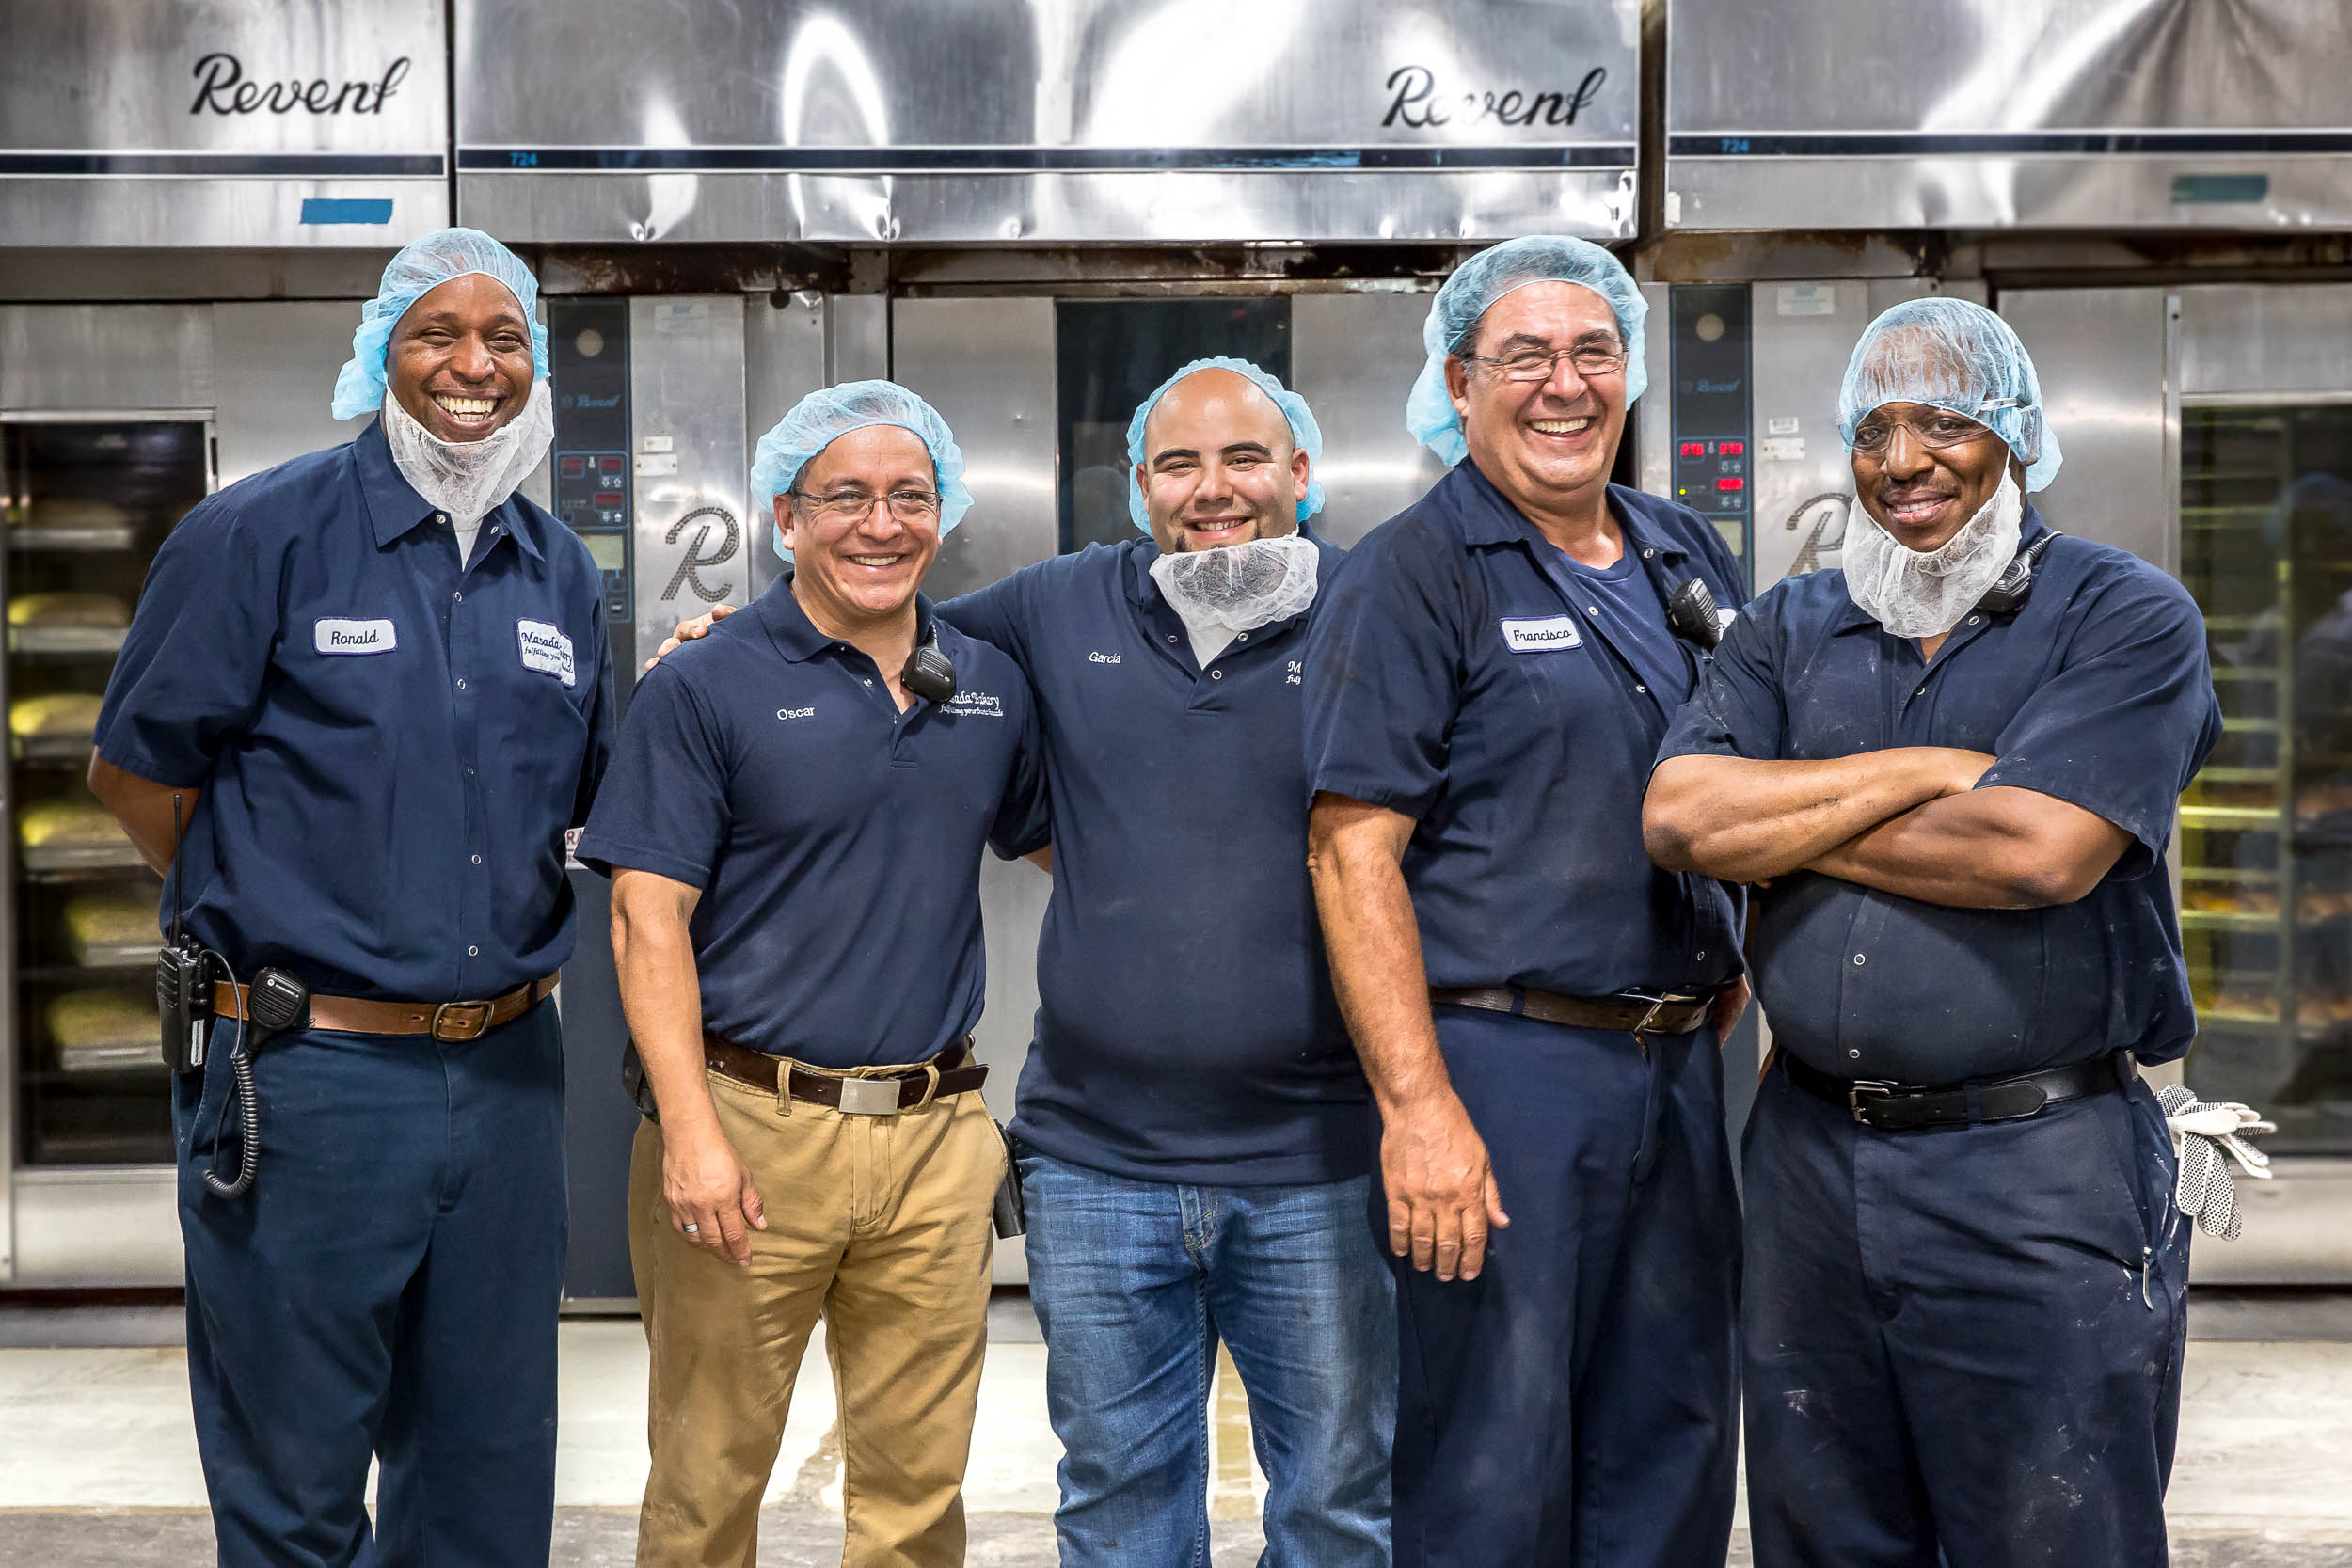 Corporate portrait of plant workers in Atlanta